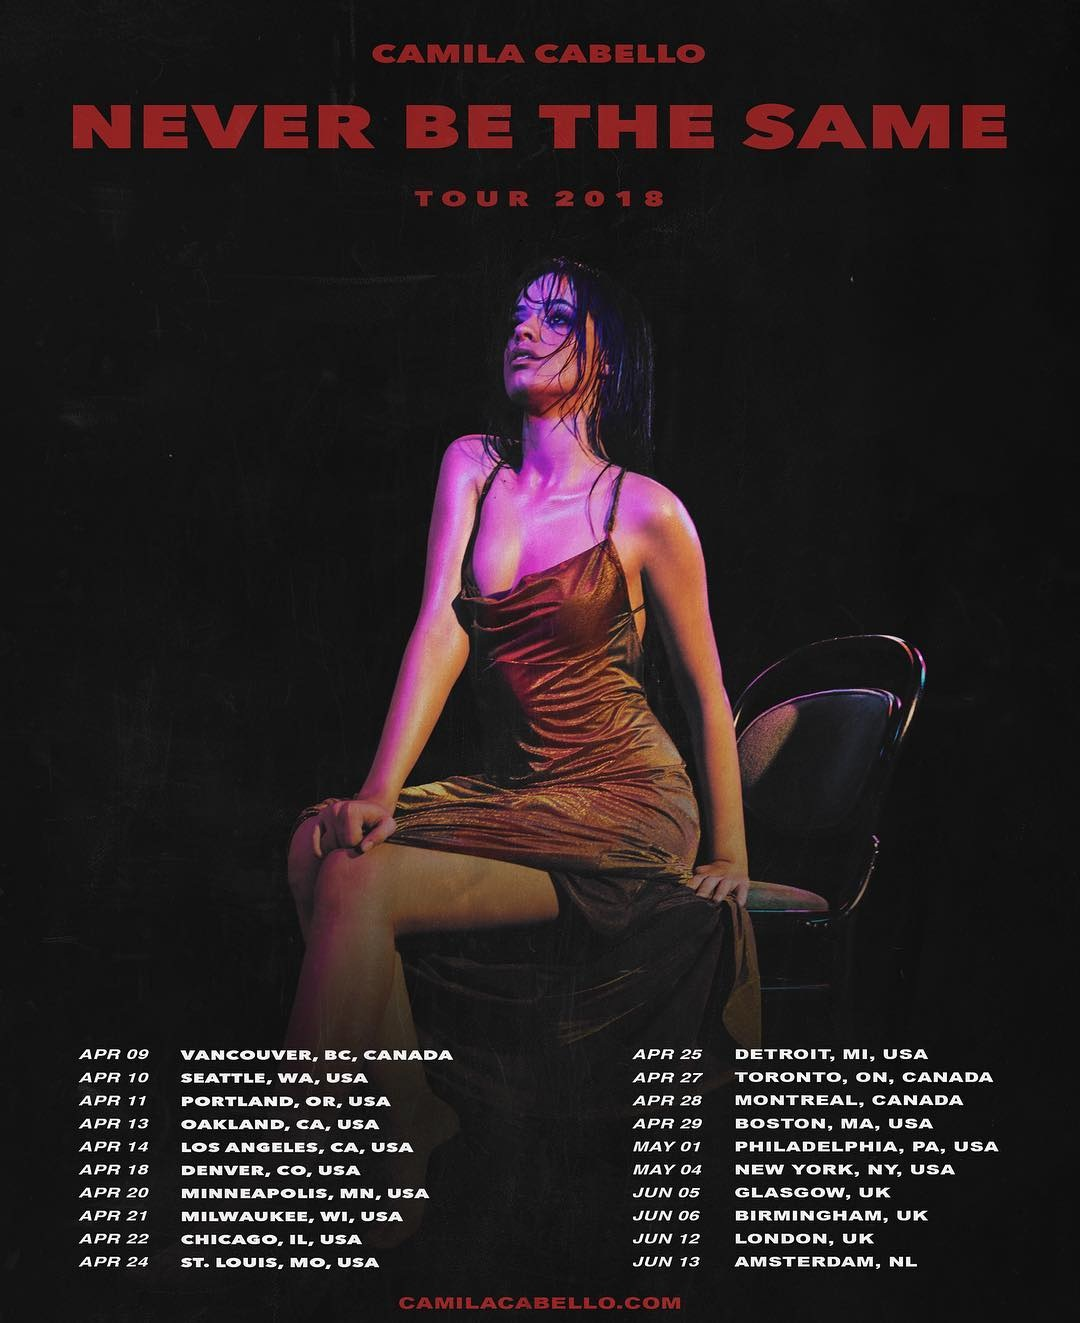 Never Be the Same Tour